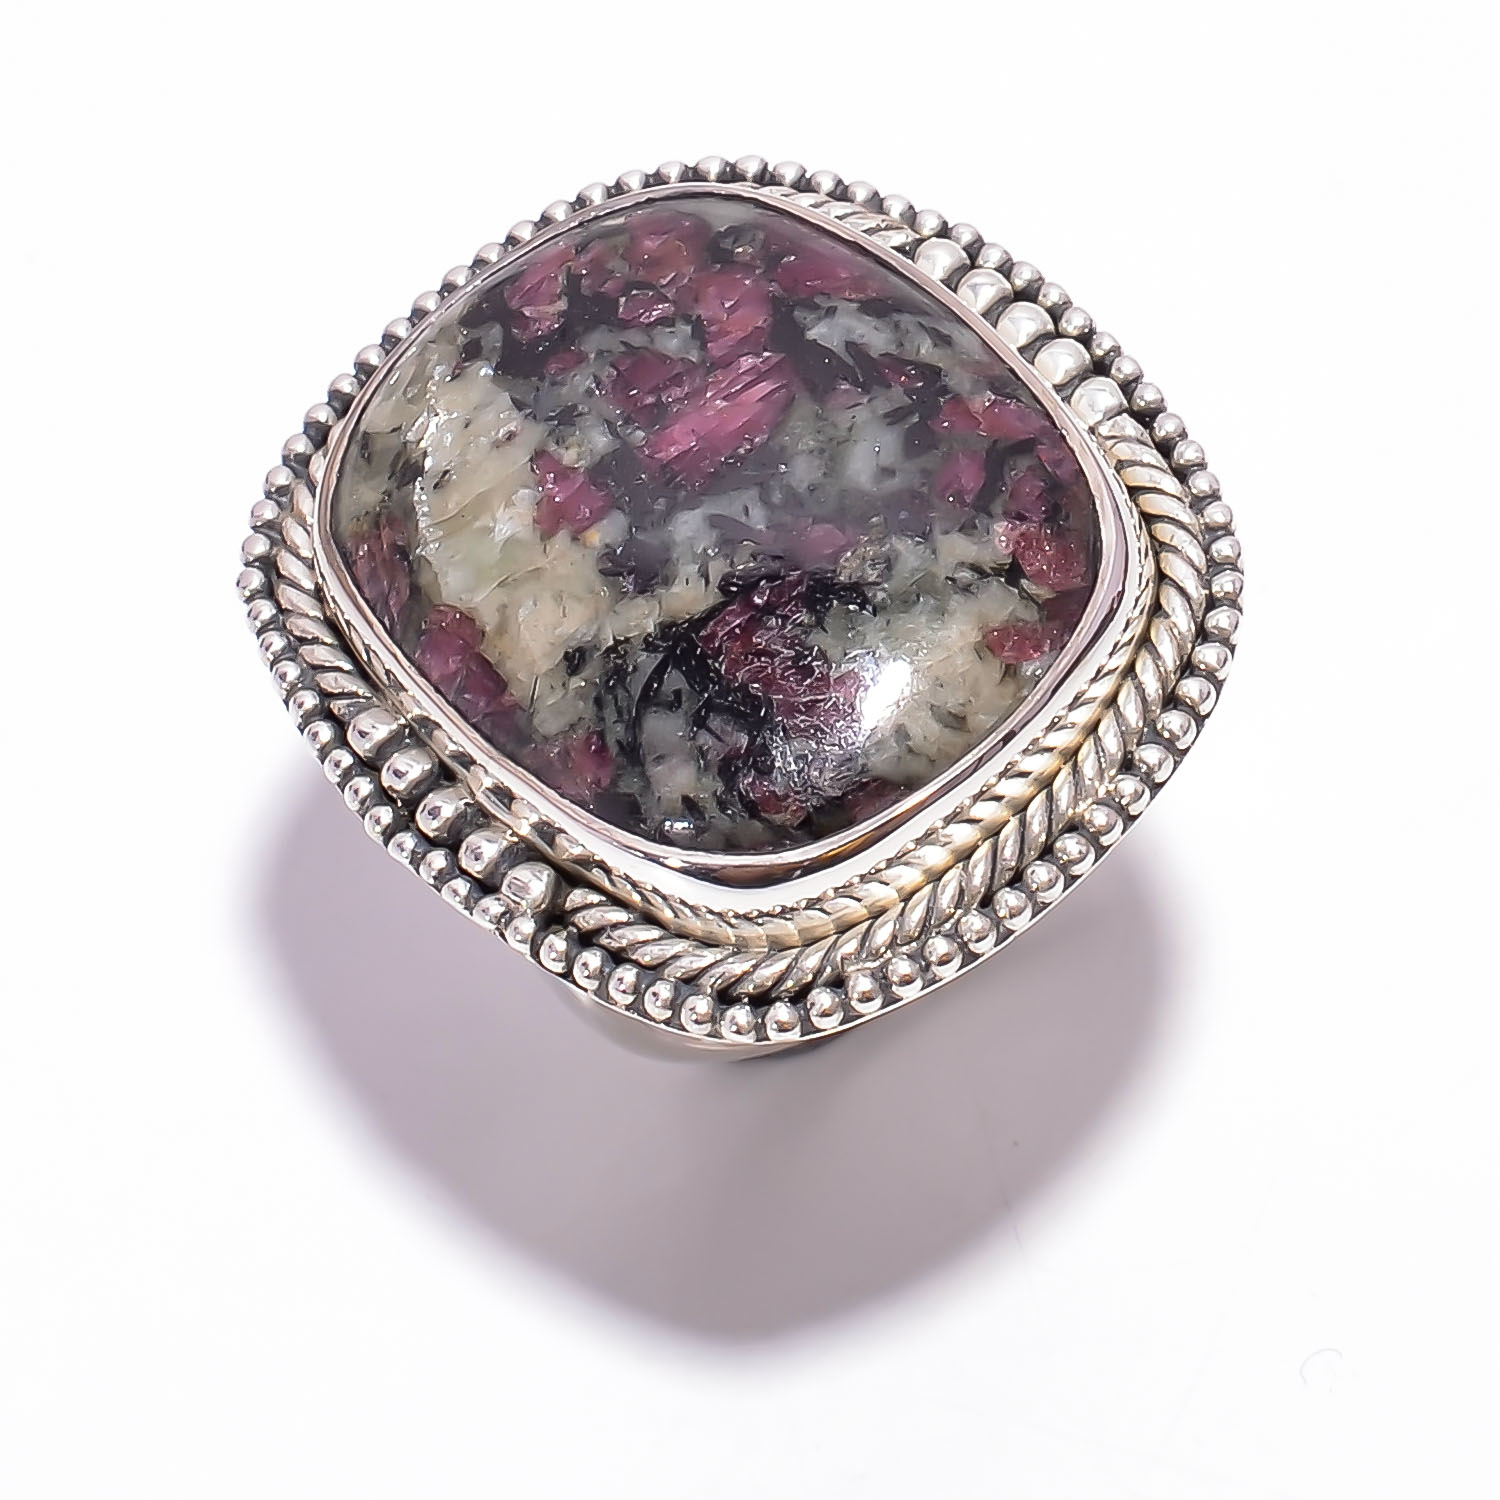 Eudialyte Gemstone 925 Sterling Silver Ring Size US 6.75